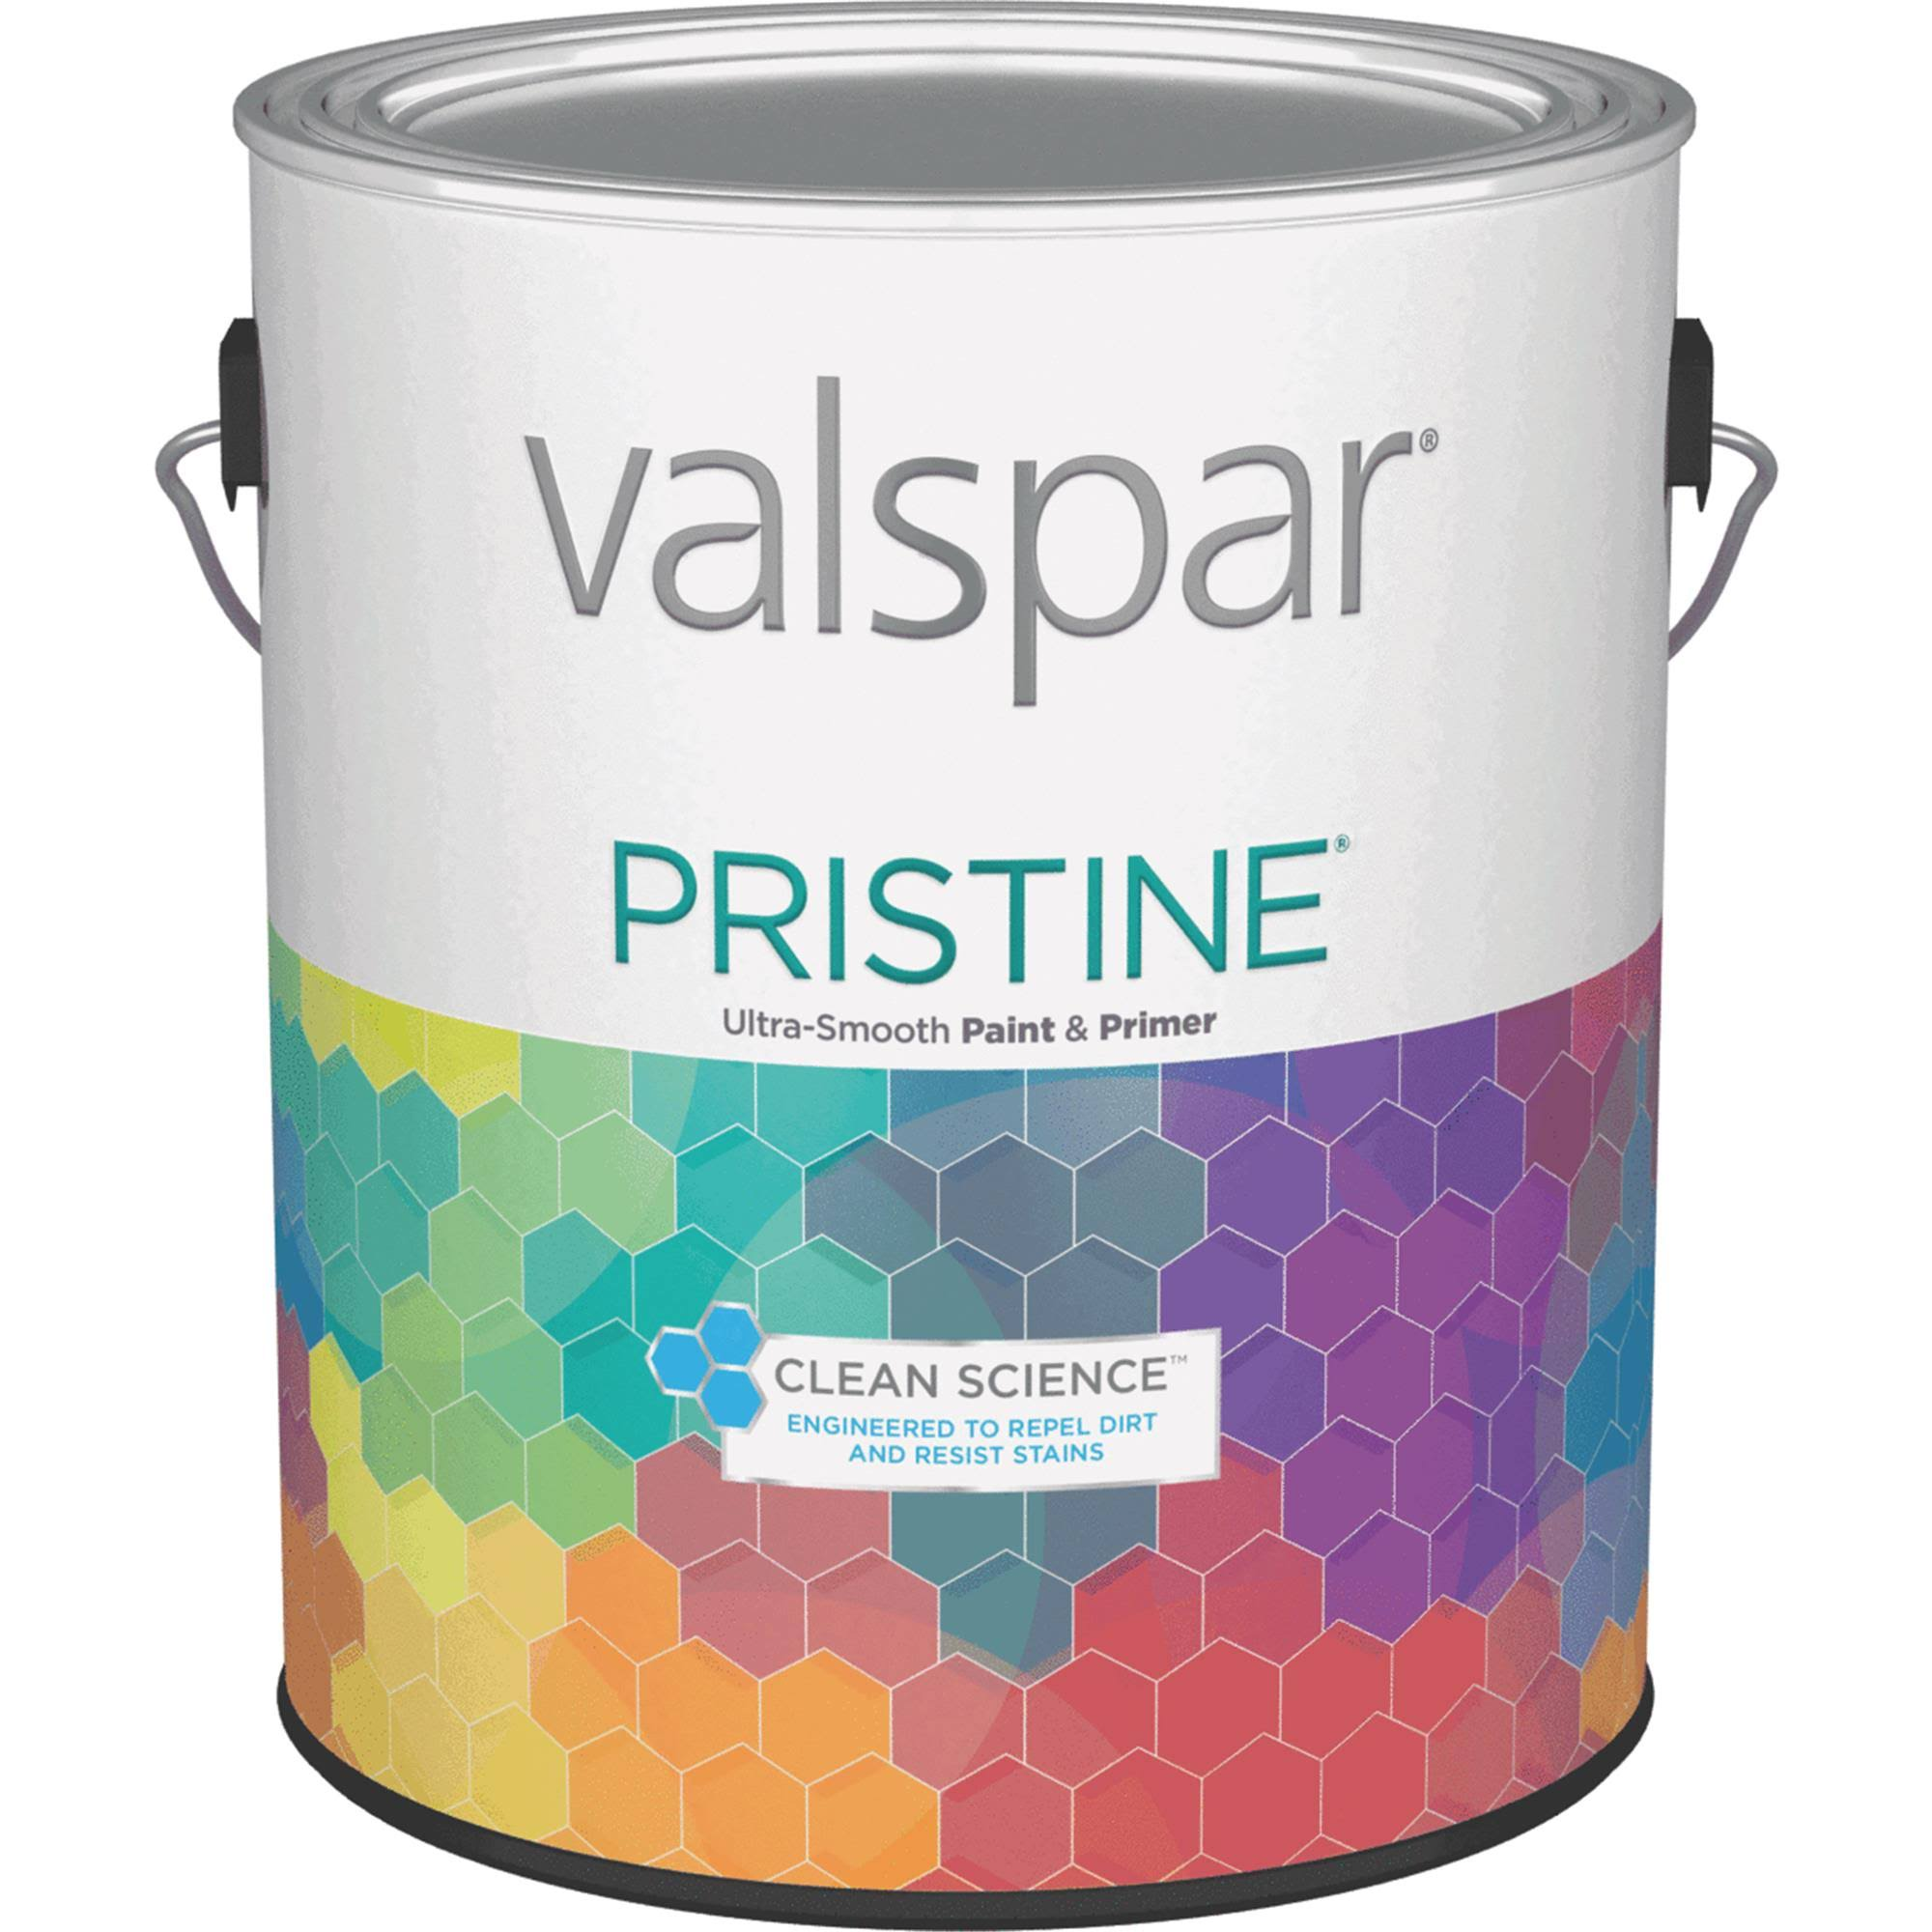 Valspar Pristine Semi-Gloss Interior Wall Paint - 18568 Pastel Base, 3.72L